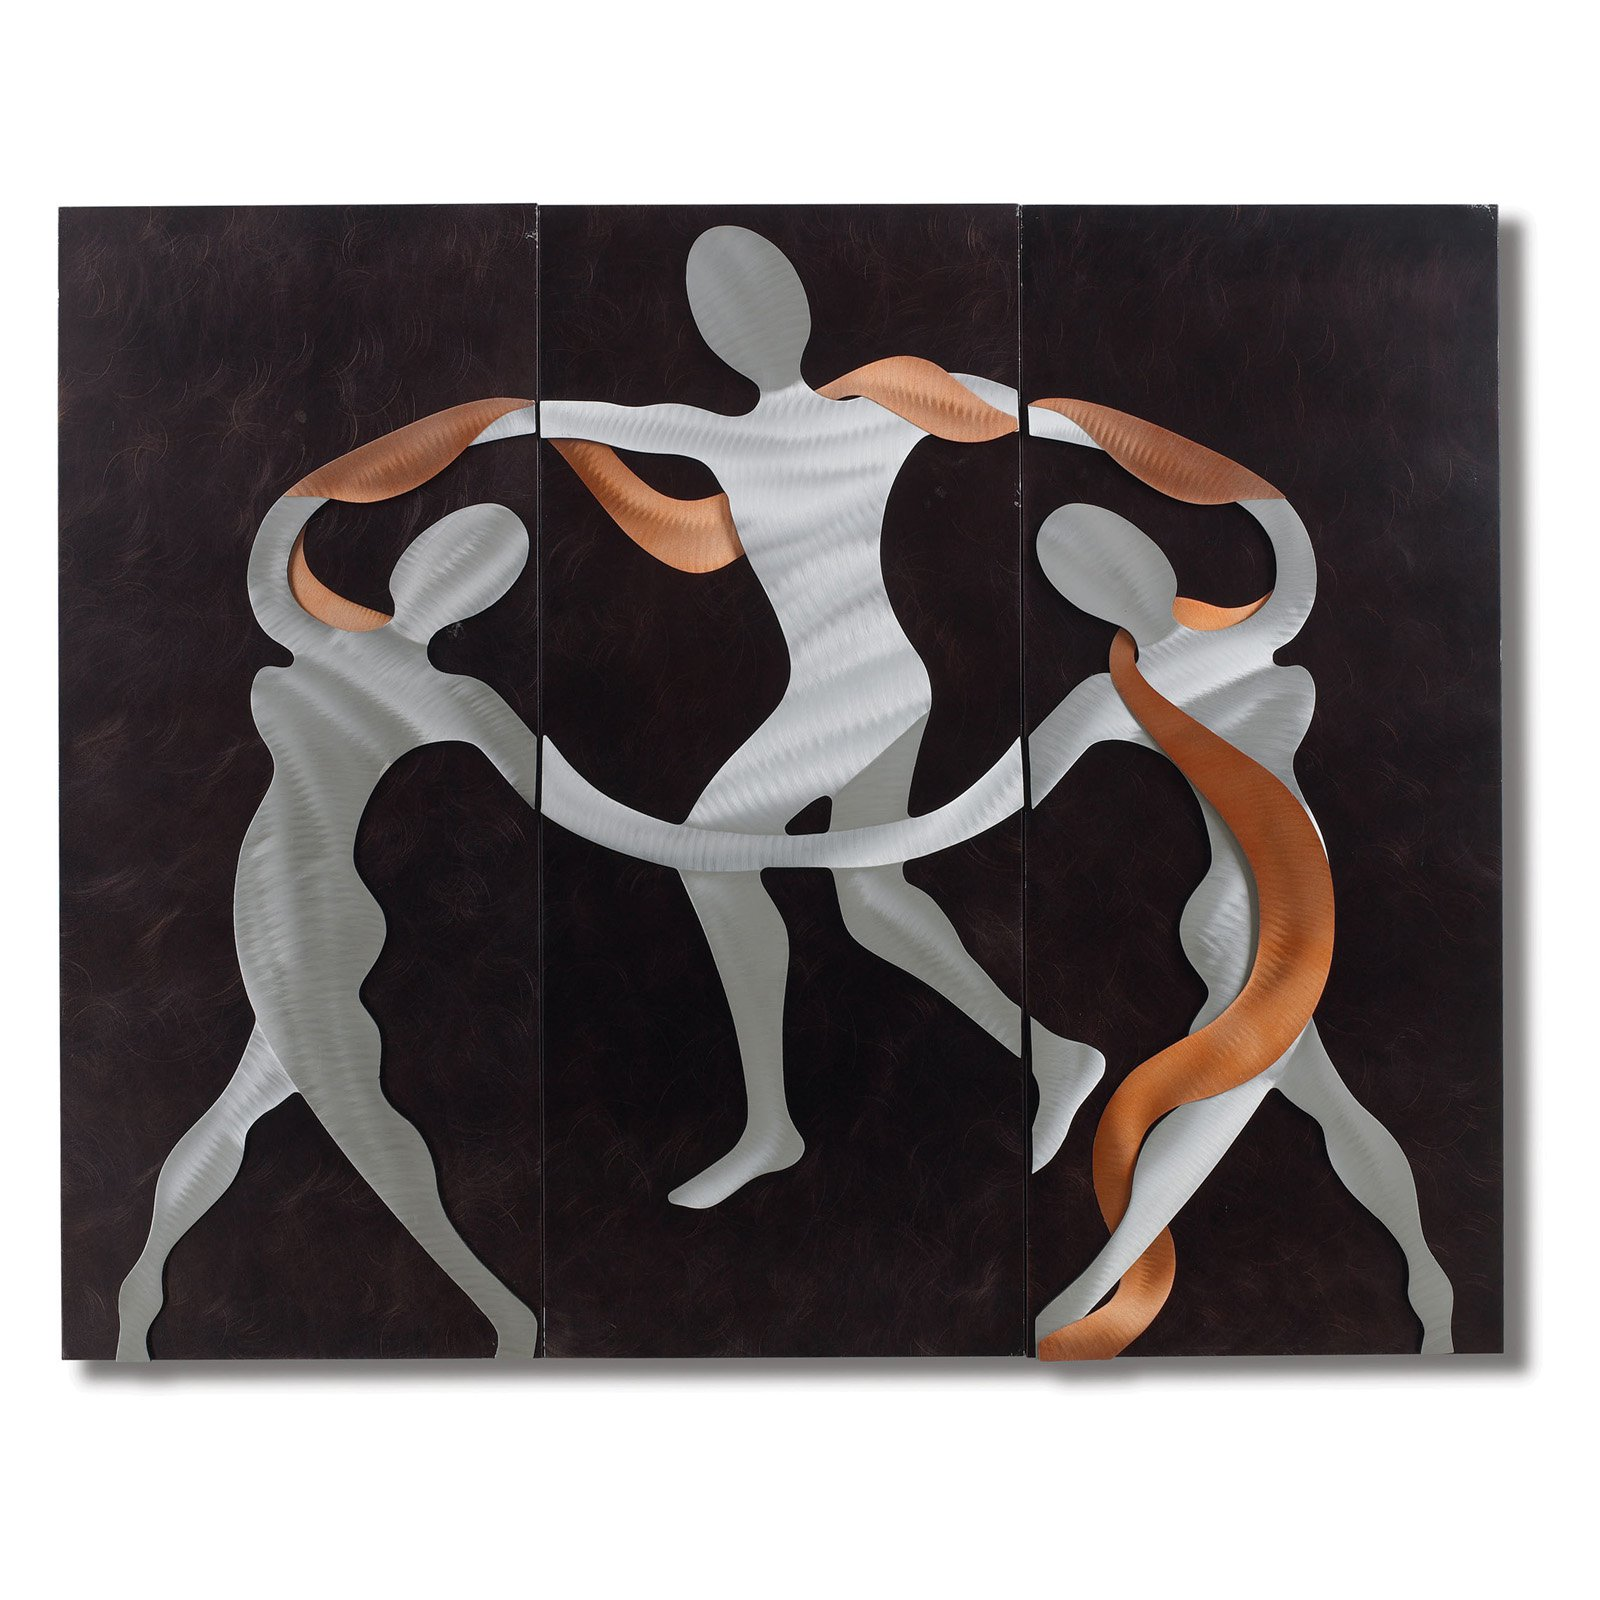 Nova Scarf Dance Metal Wall Art - 54W x 42H in.